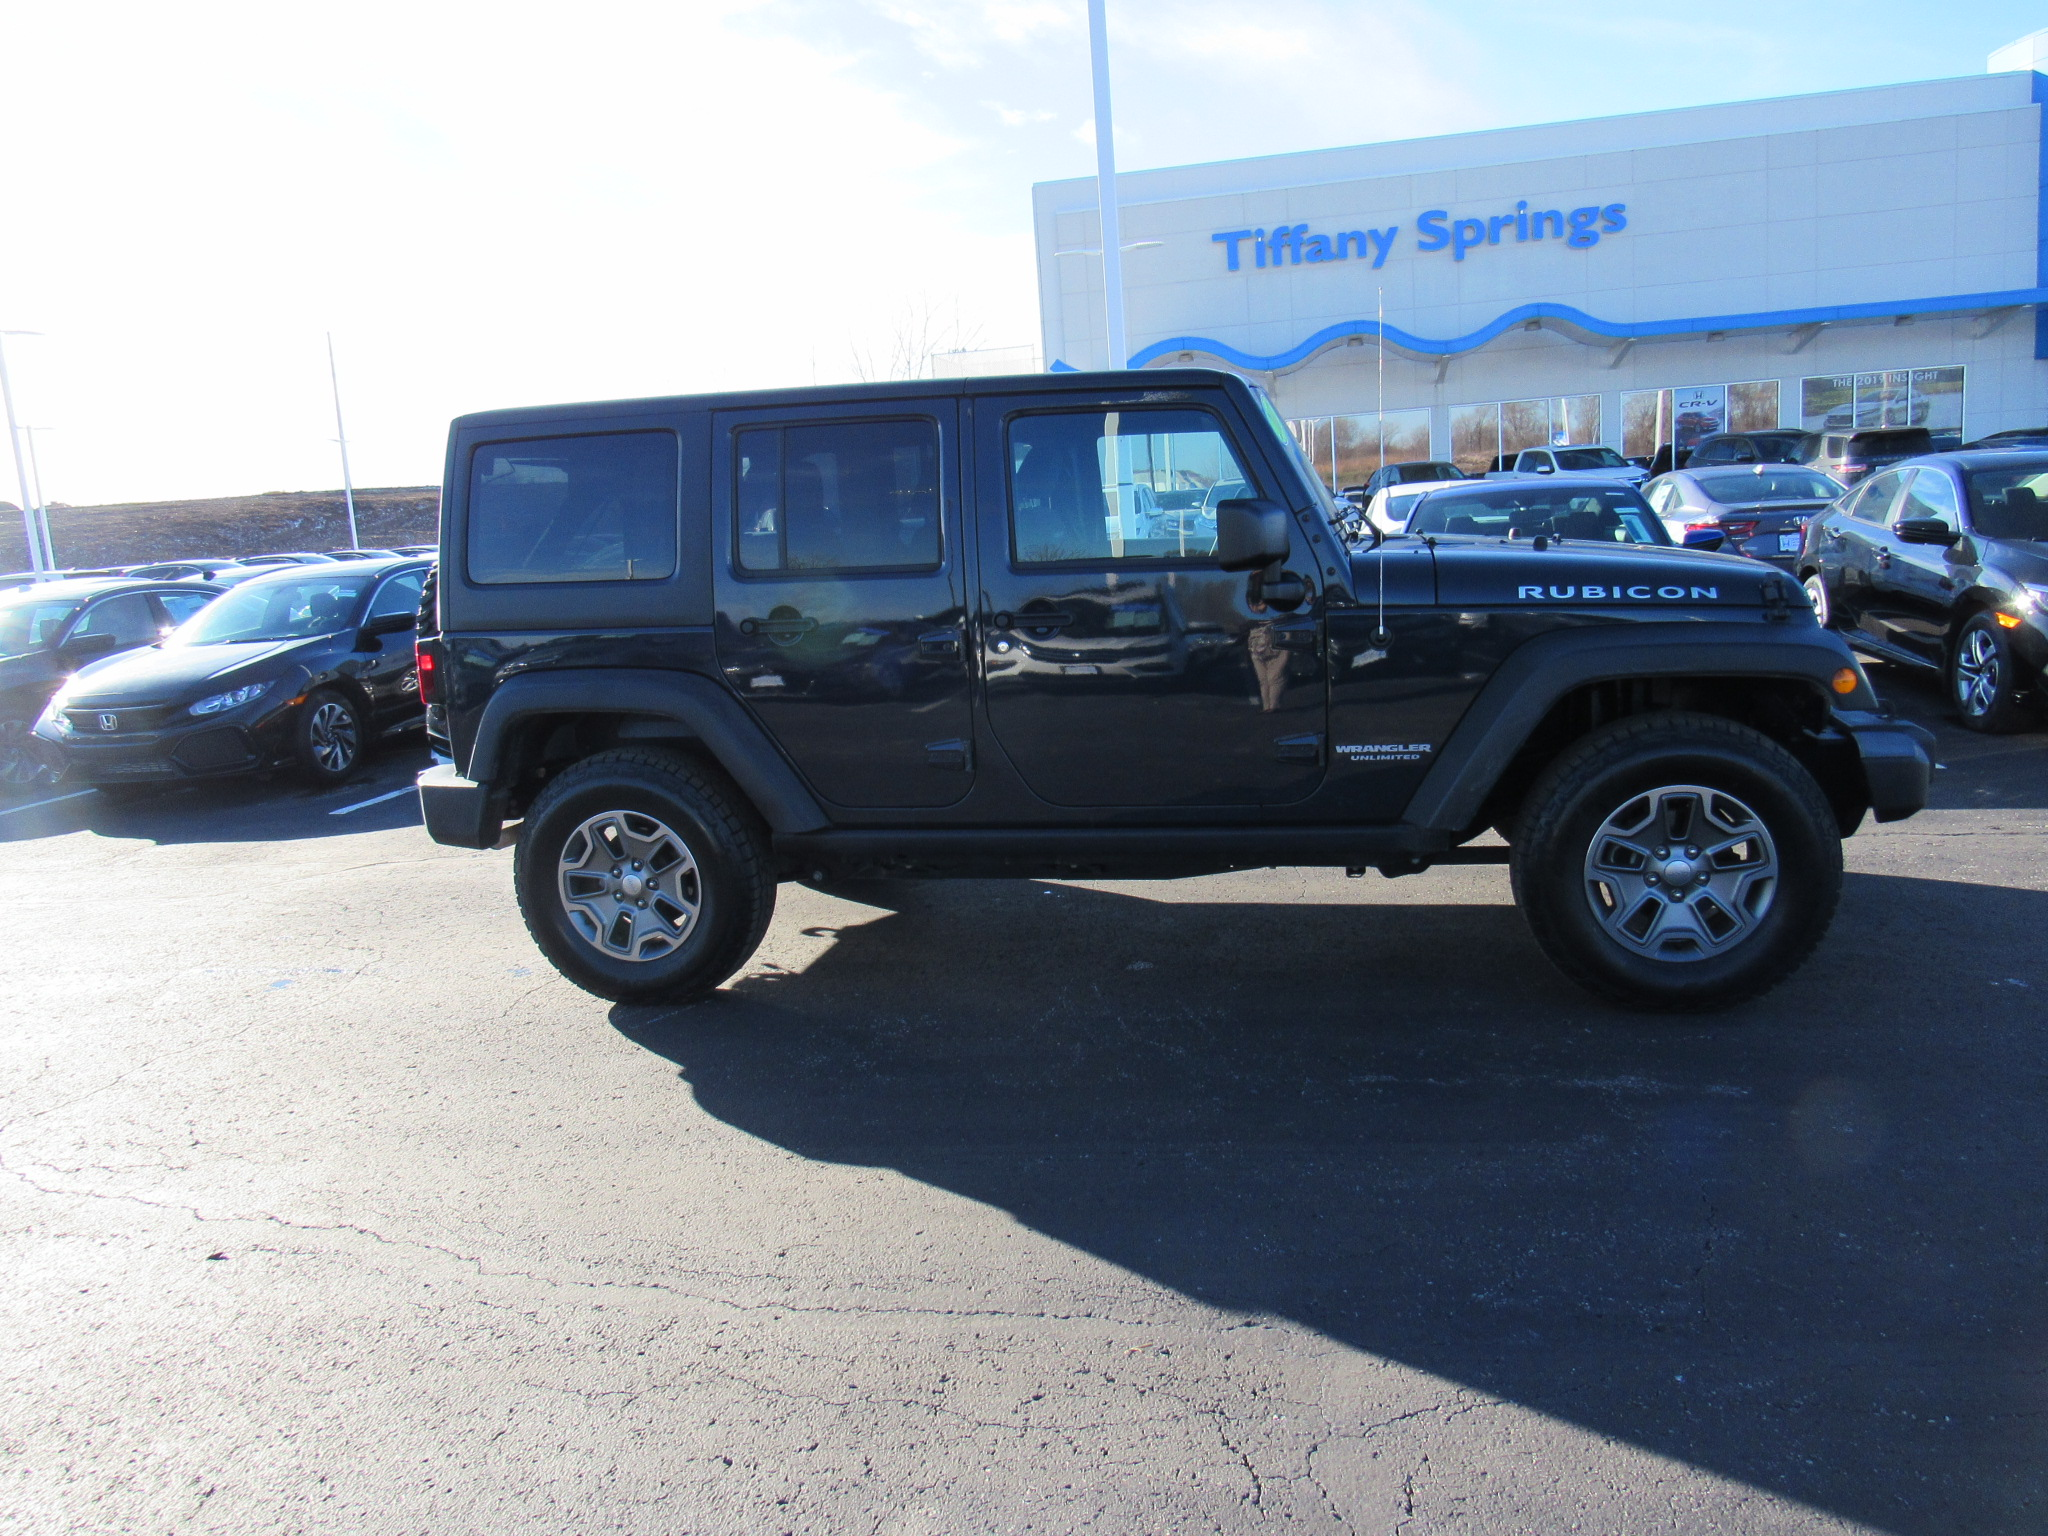 used 2017 jeep wrangler unlimited rubicon recon 4x4 honda of tiffany springs kansas city mo. Black Bedroom Furniture Sets. Home Design Ideas